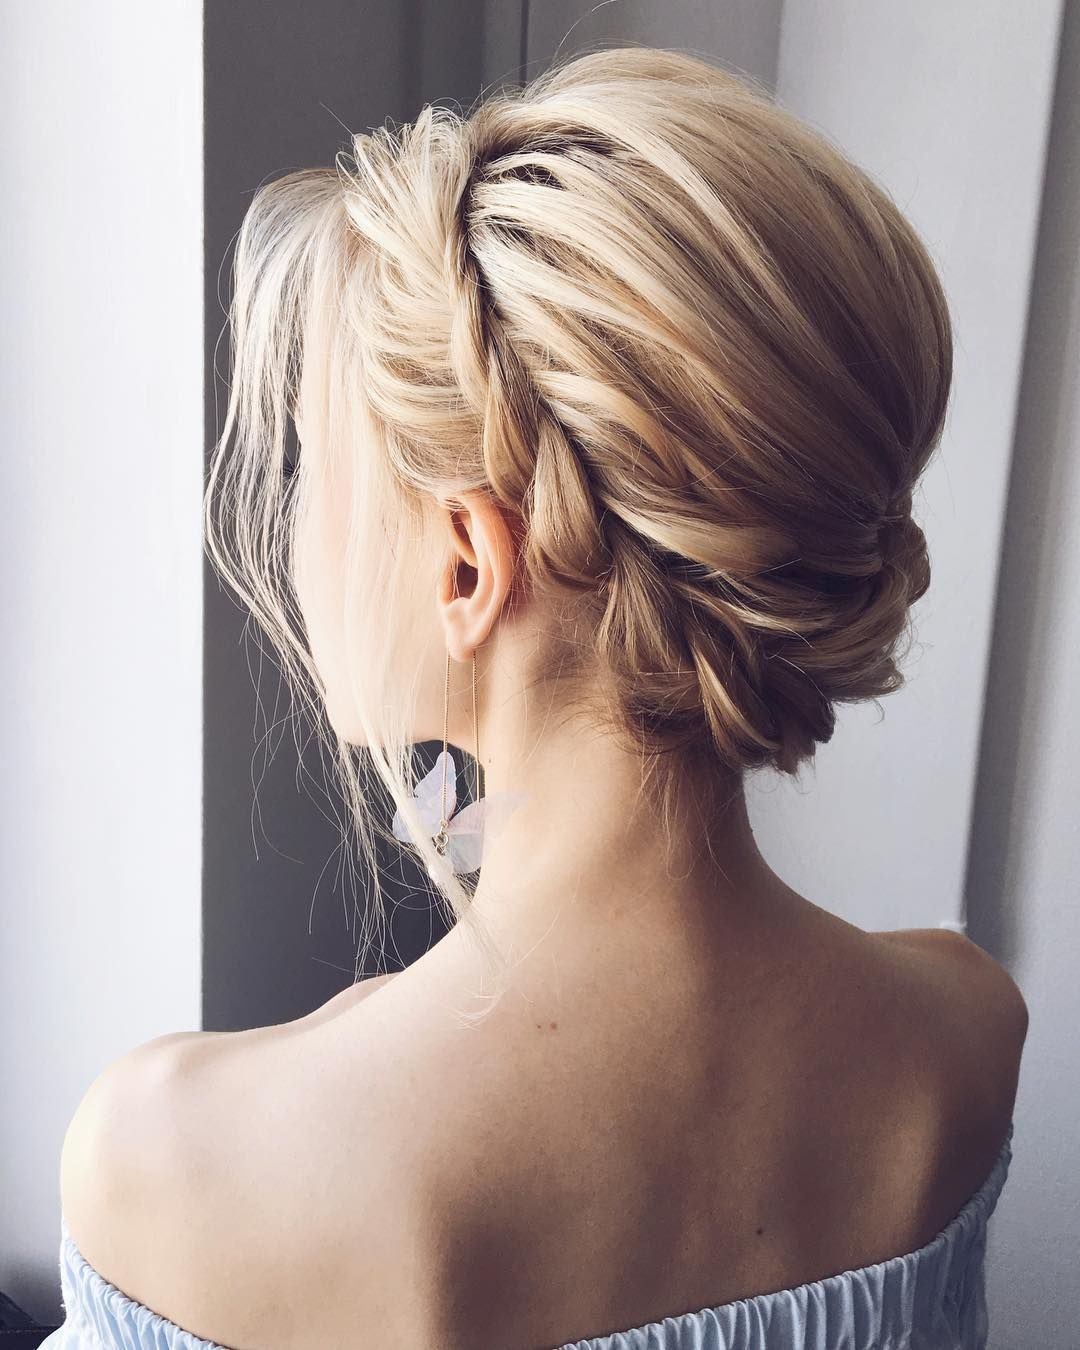 55 amazing updo hairstyles with the wow factor | hair